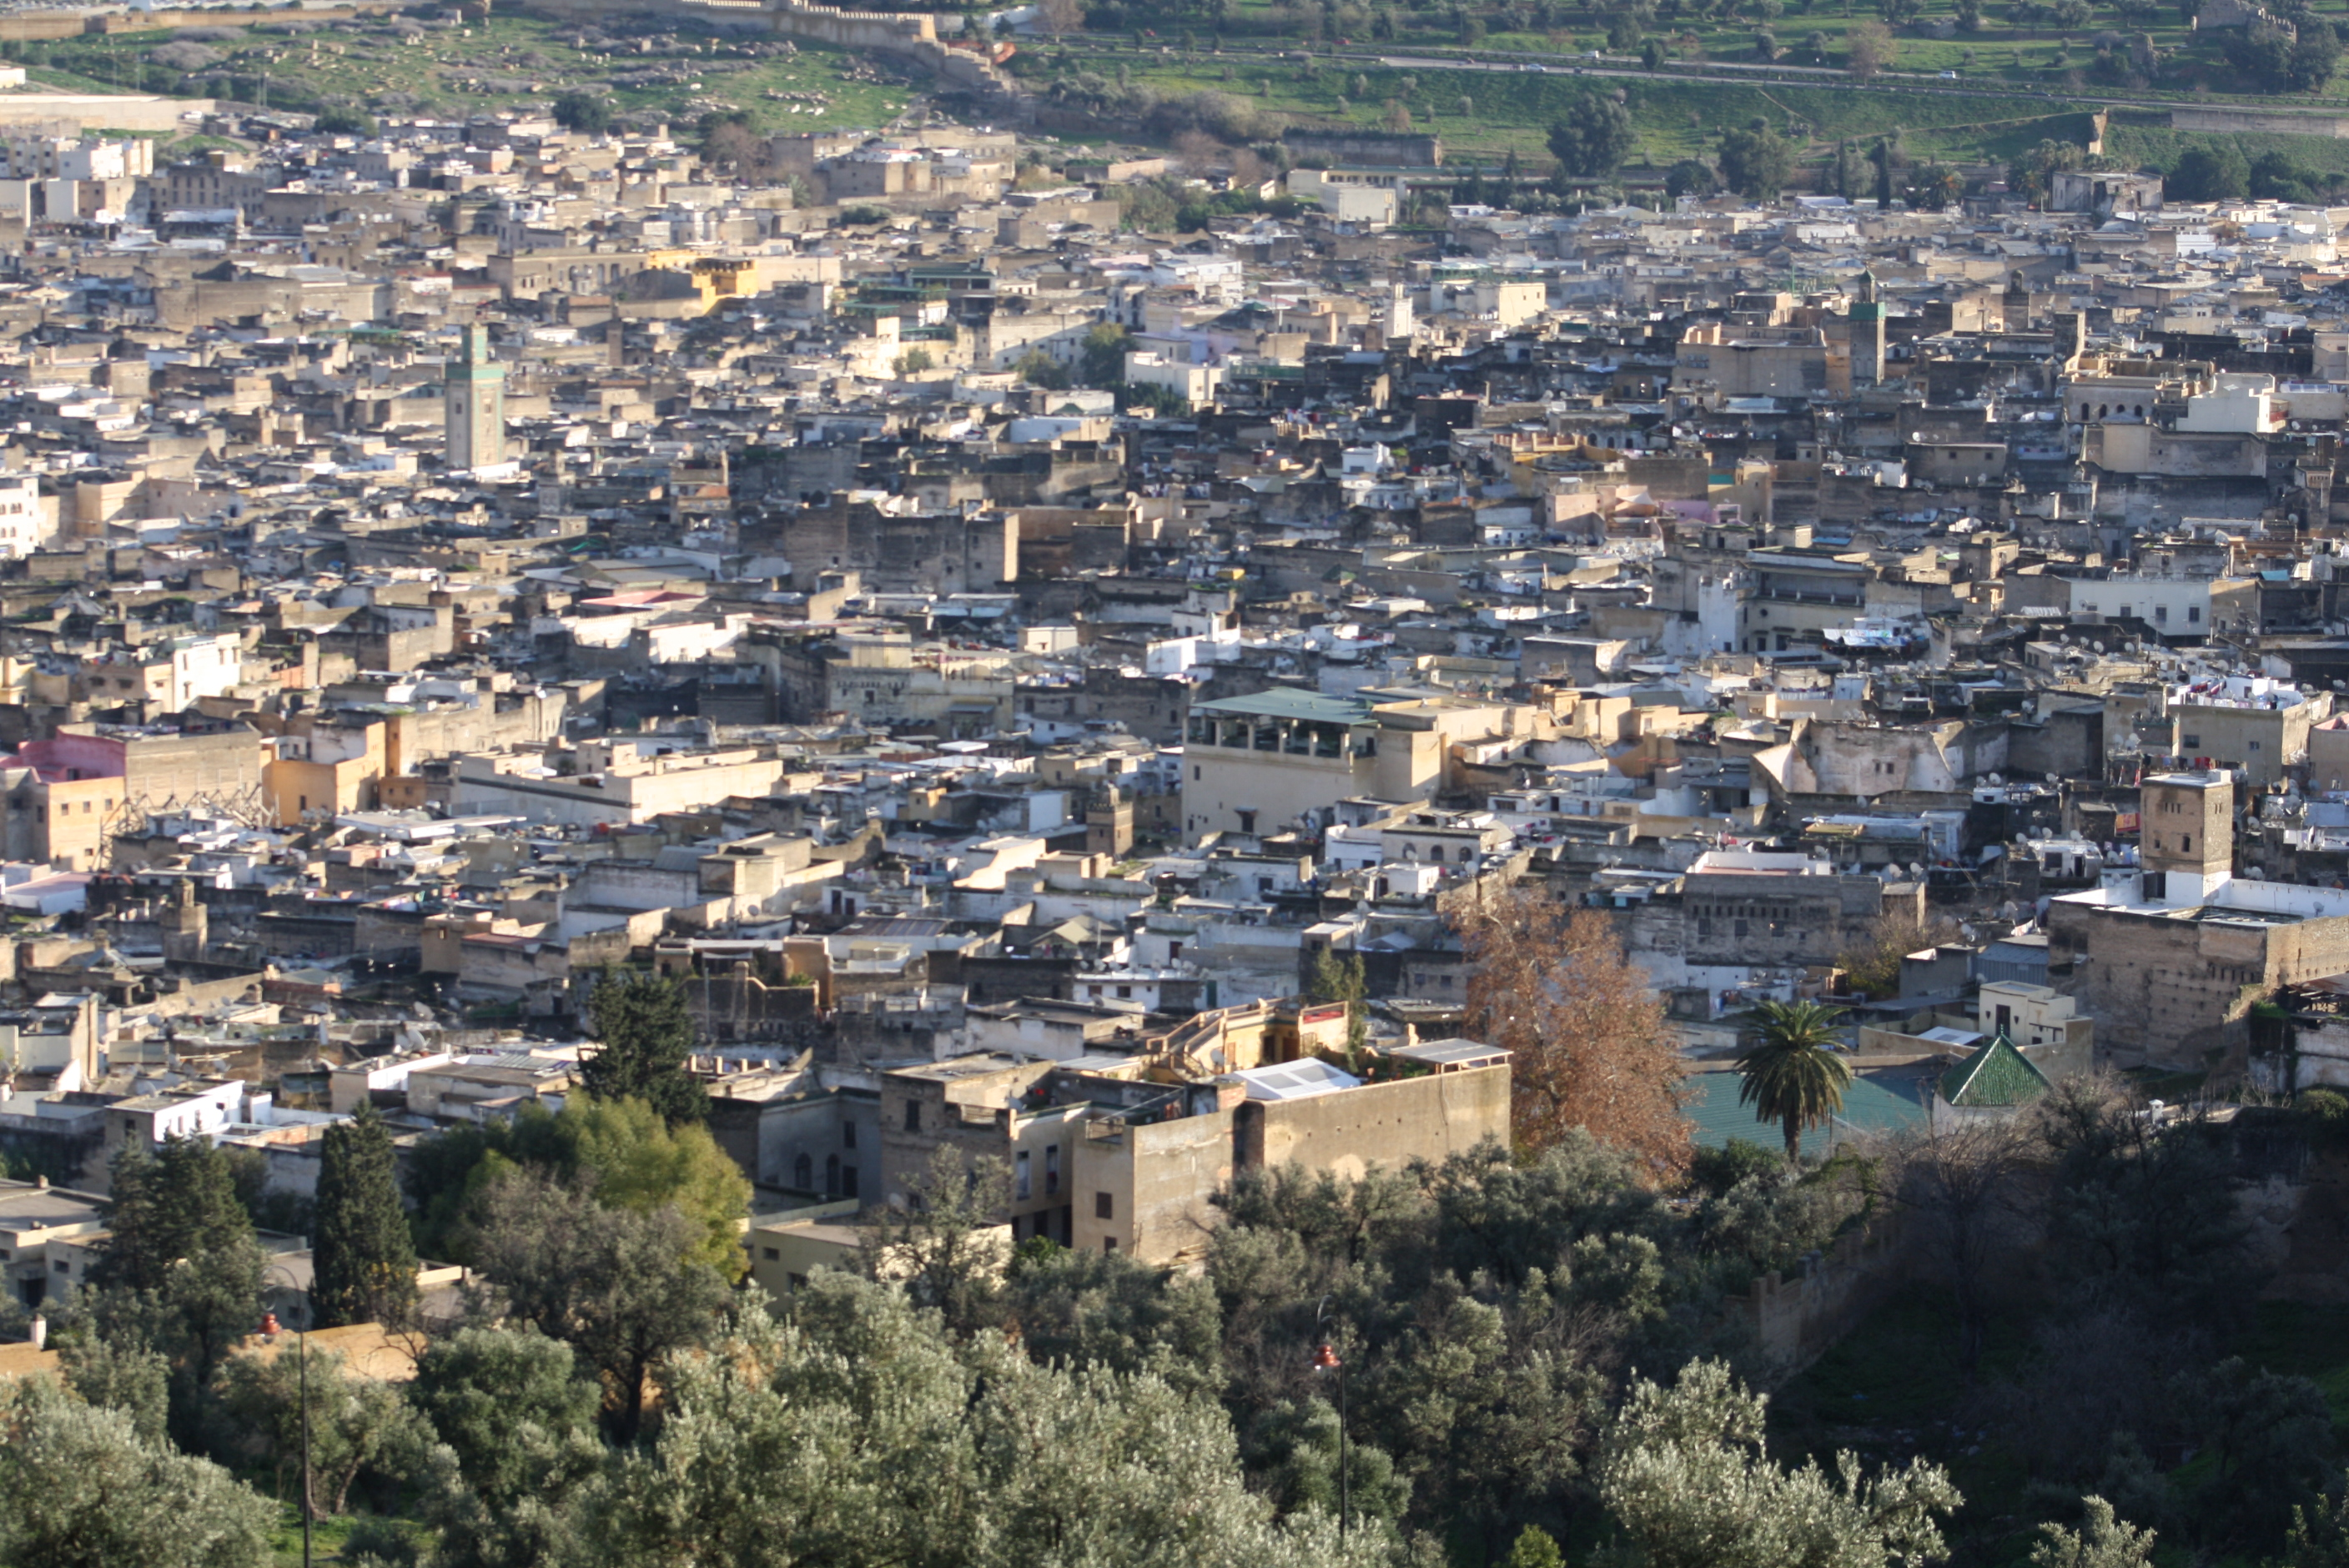 Fes - one of the old royal cities in Marocco